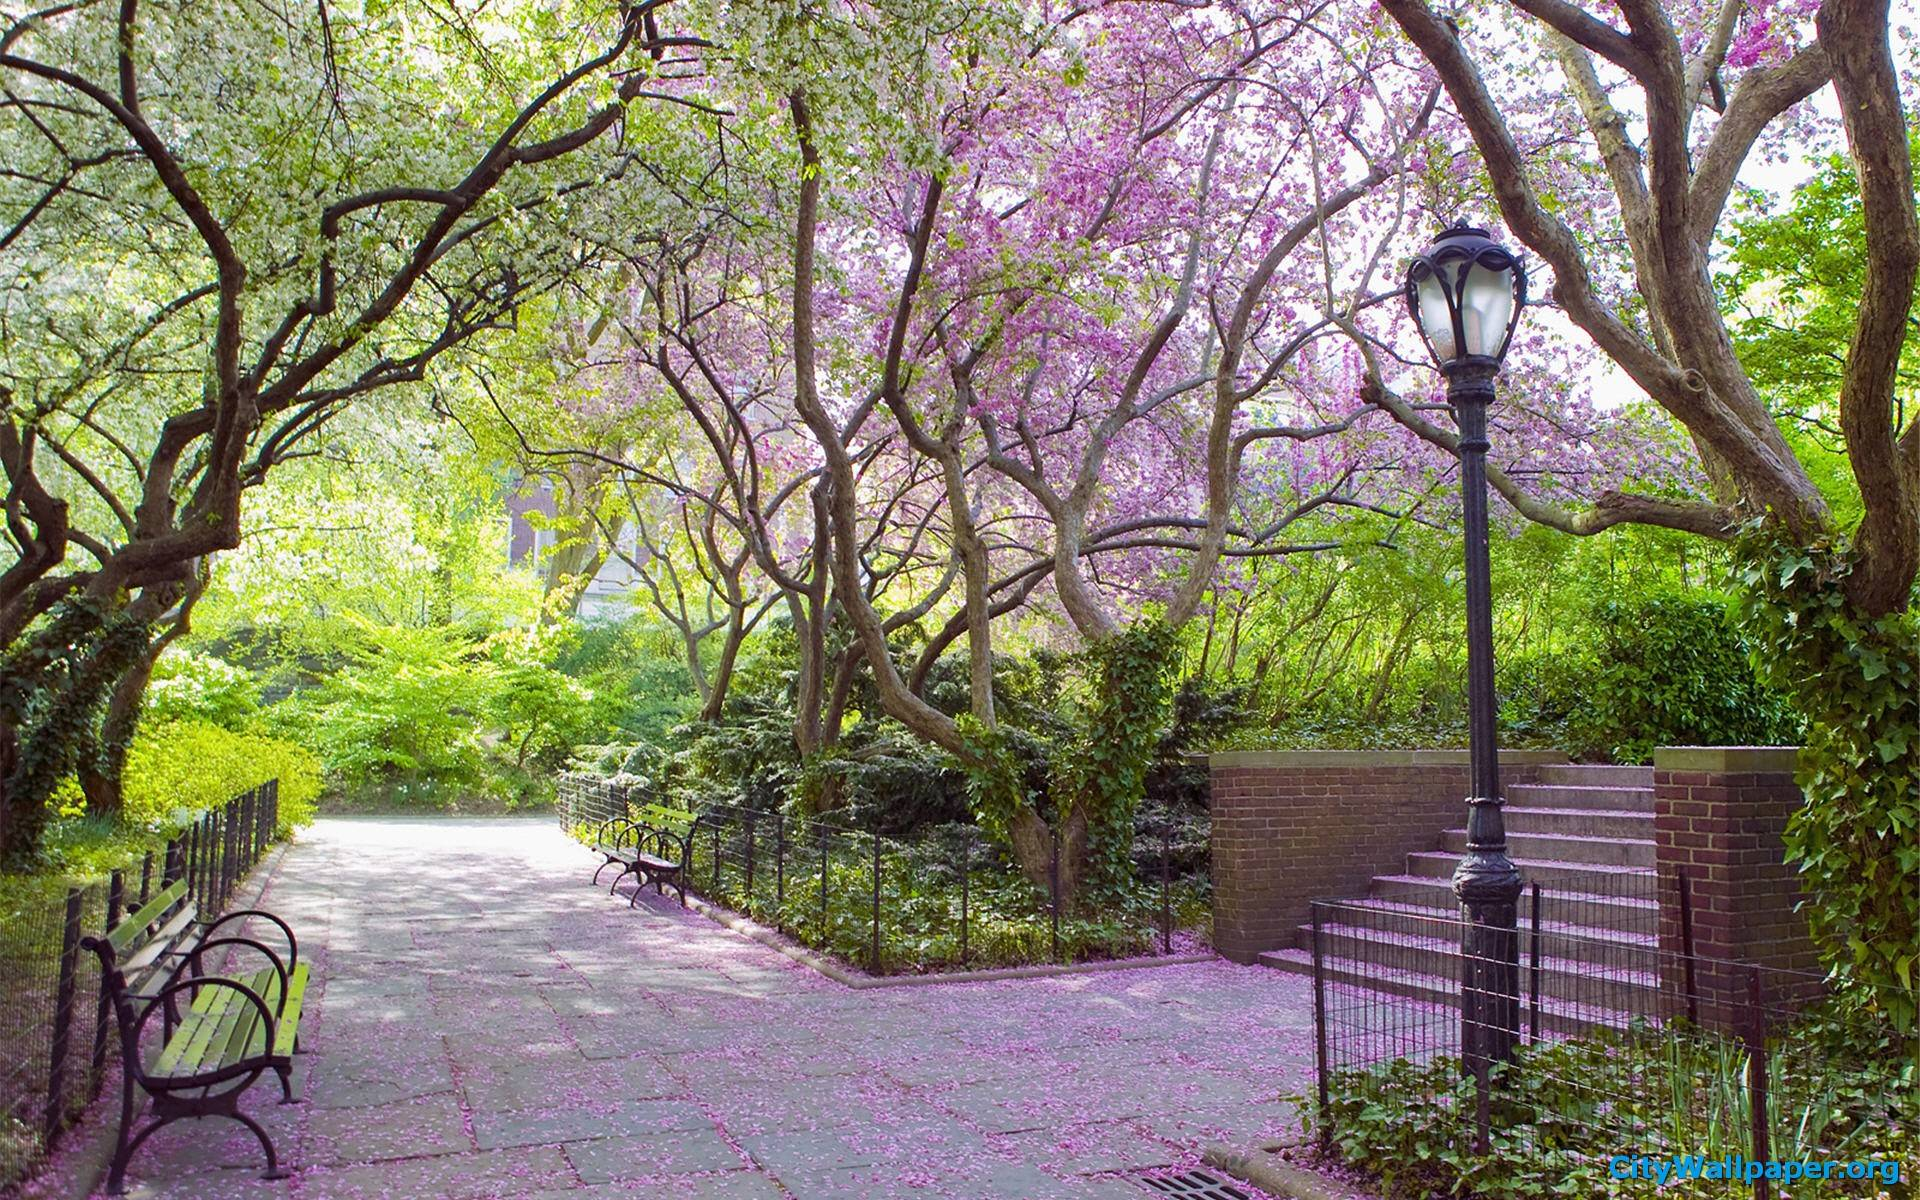 Central Park Wallpapers - Full HD wallpaper search - page 2